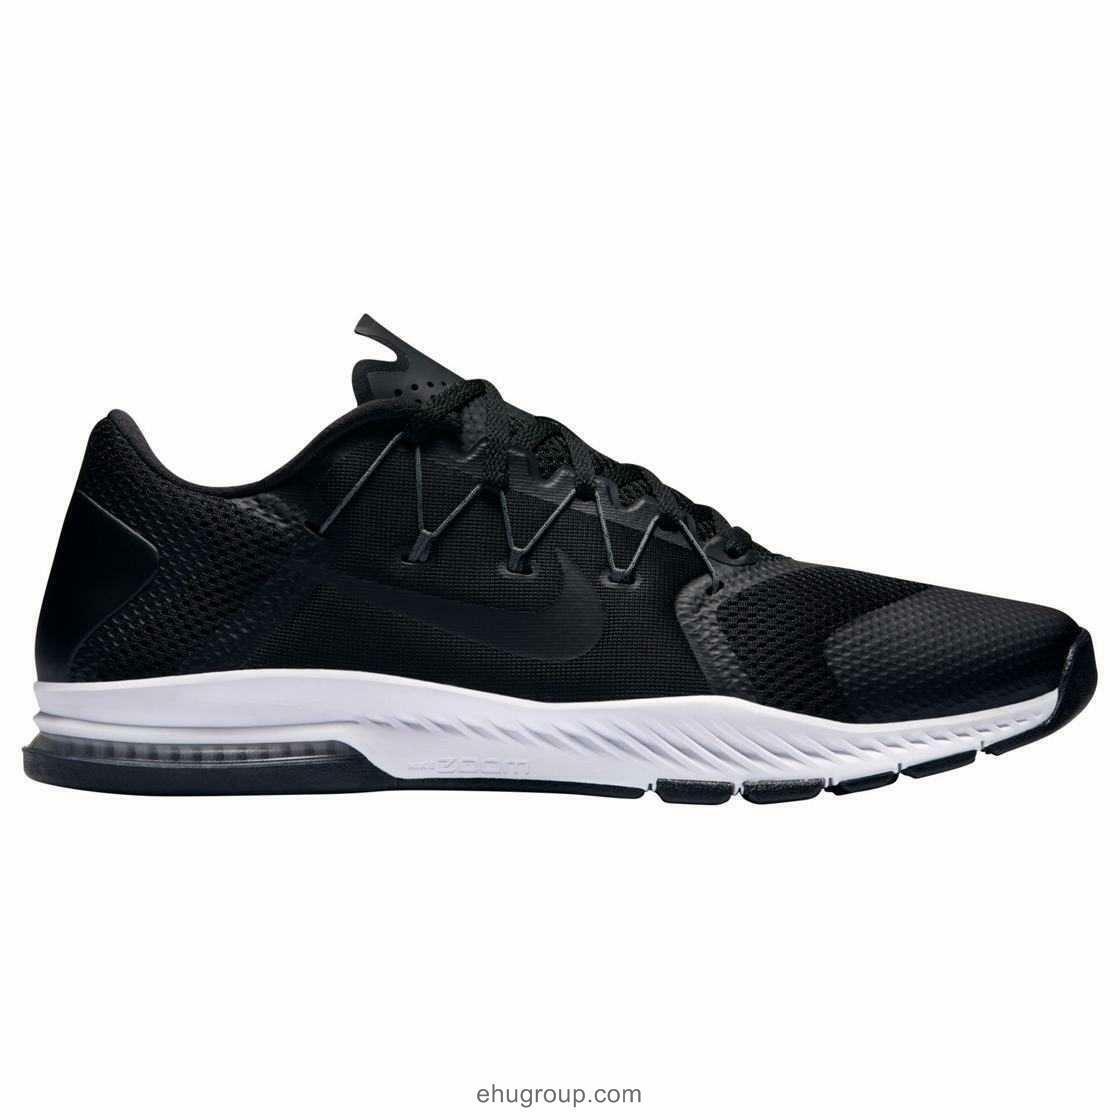 NEW 110 homme NIKE Taille FREE RN DISTANCE 2 chaussures Taille NIKE 12 1e72d7